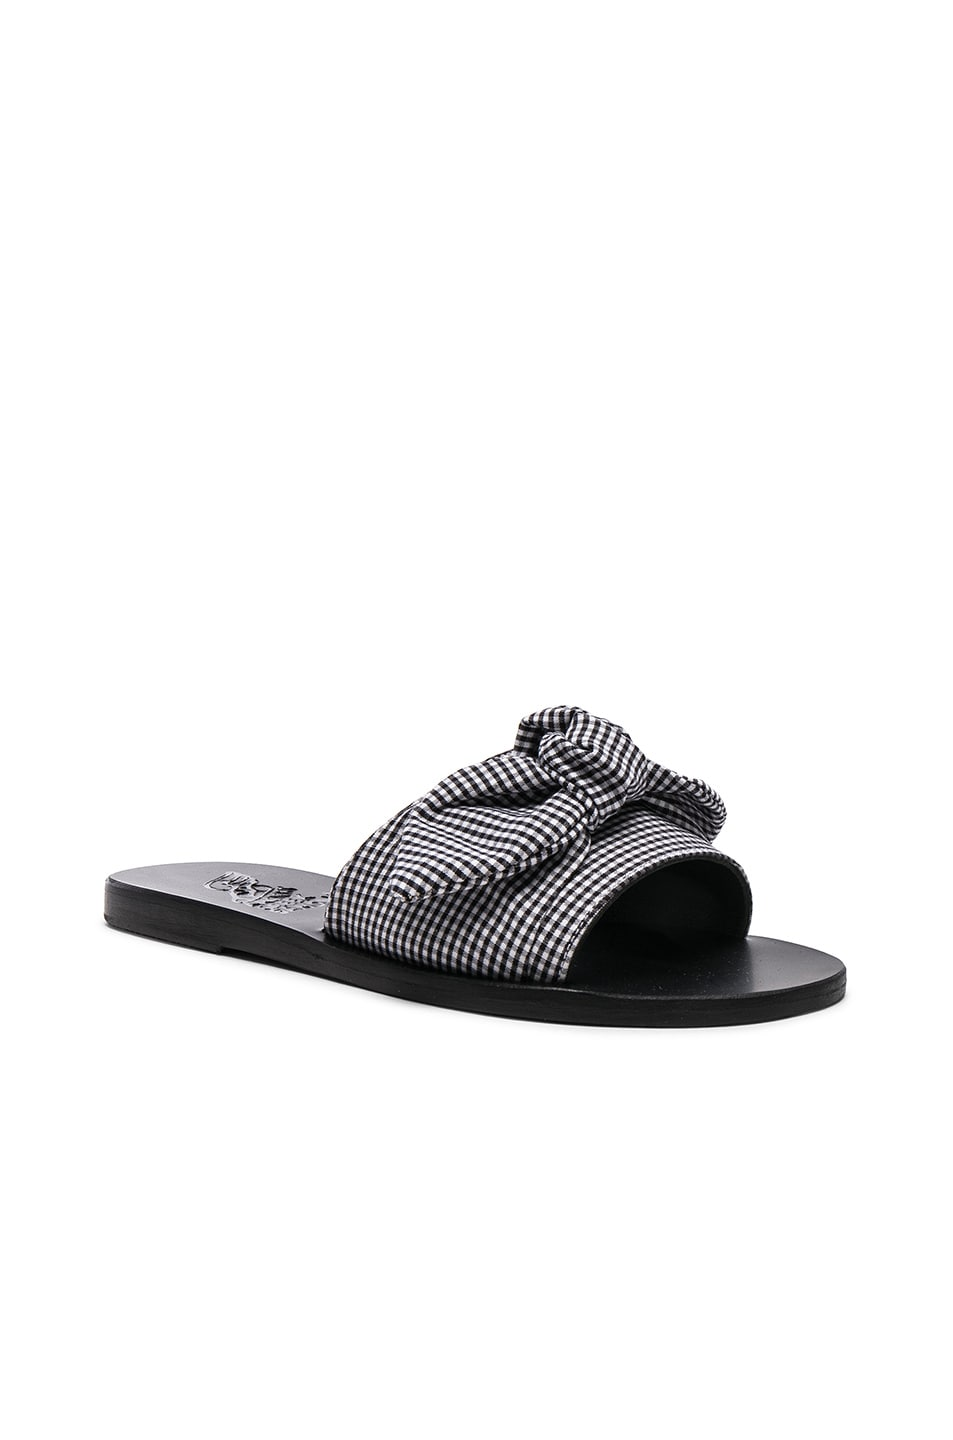 595f95bc1277b Image 2 of Ancient Greek Sandals Gingham Taygete Bow Sandals in Gingham  Black